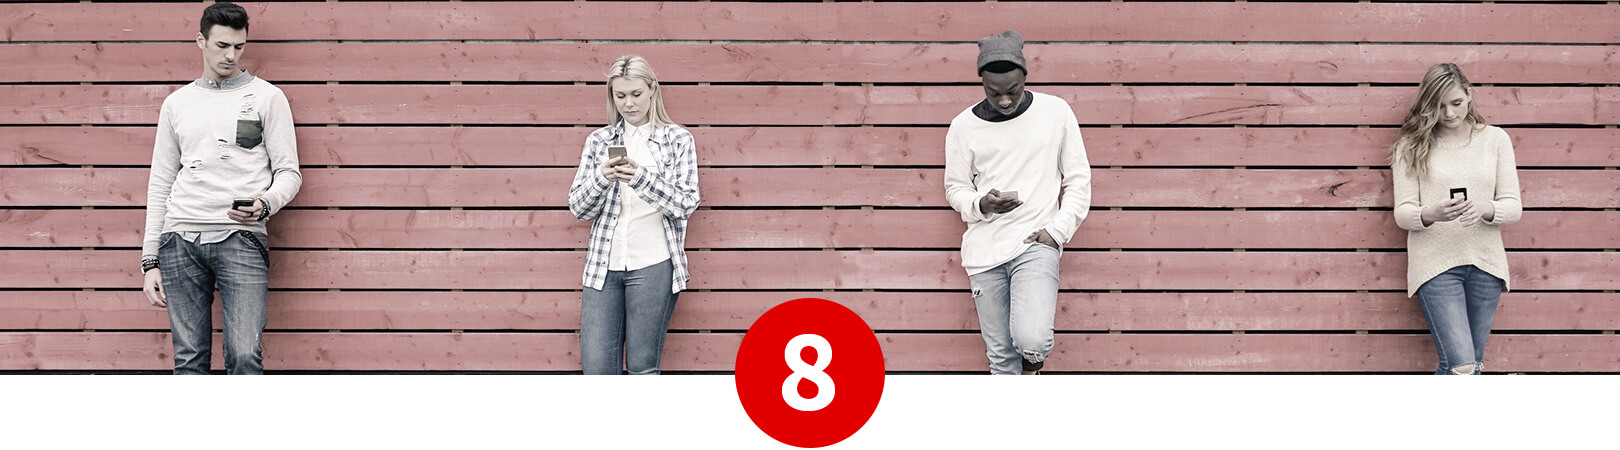 5.9: Number of hours an average adult spends with digital media every day